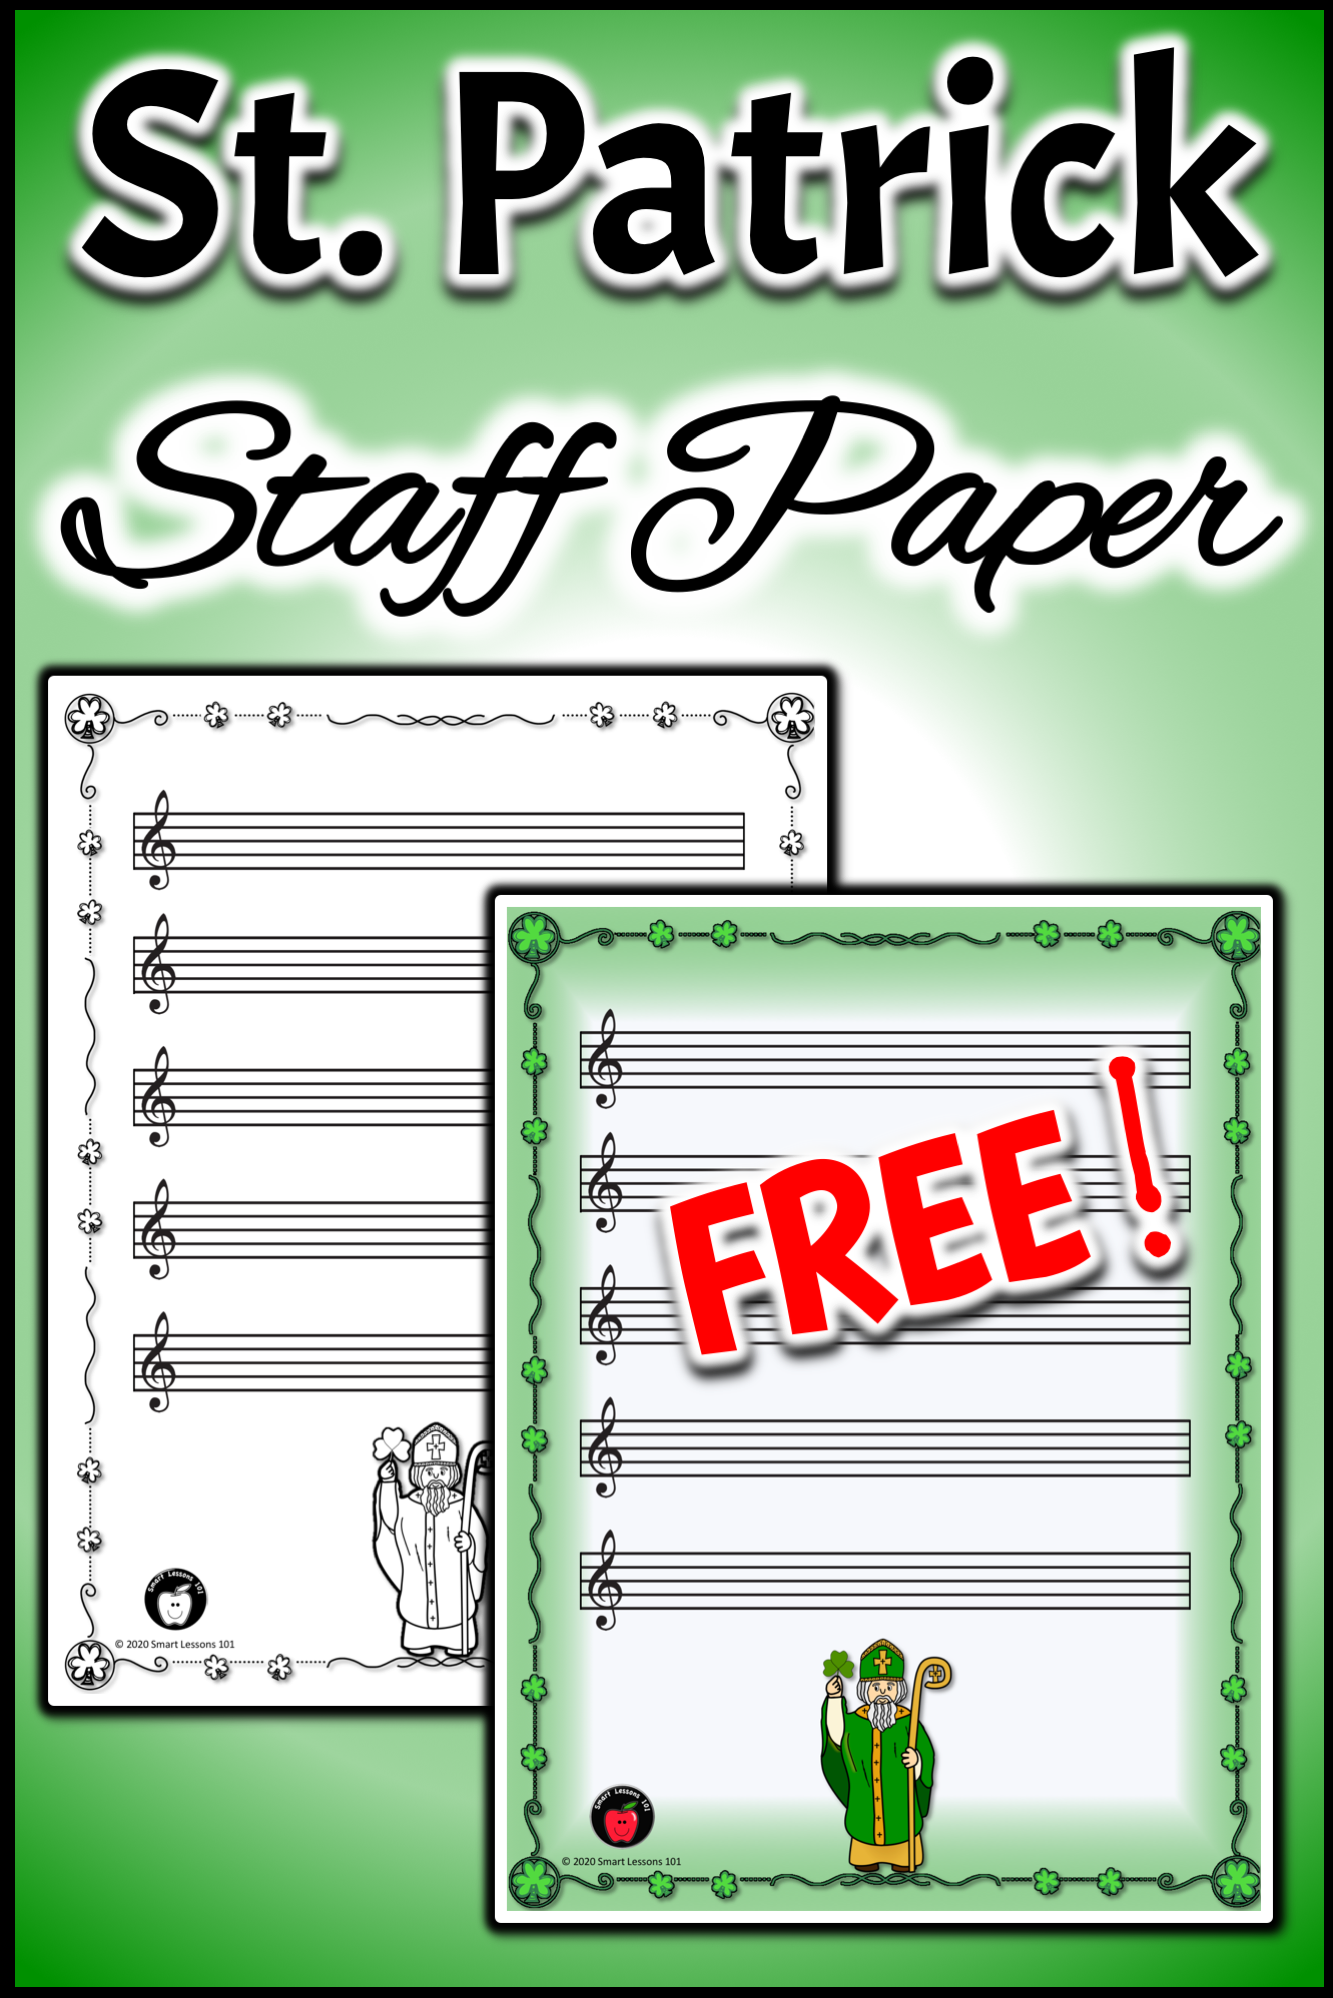 Free St Patrick Staff Paper Music Worksheets Free